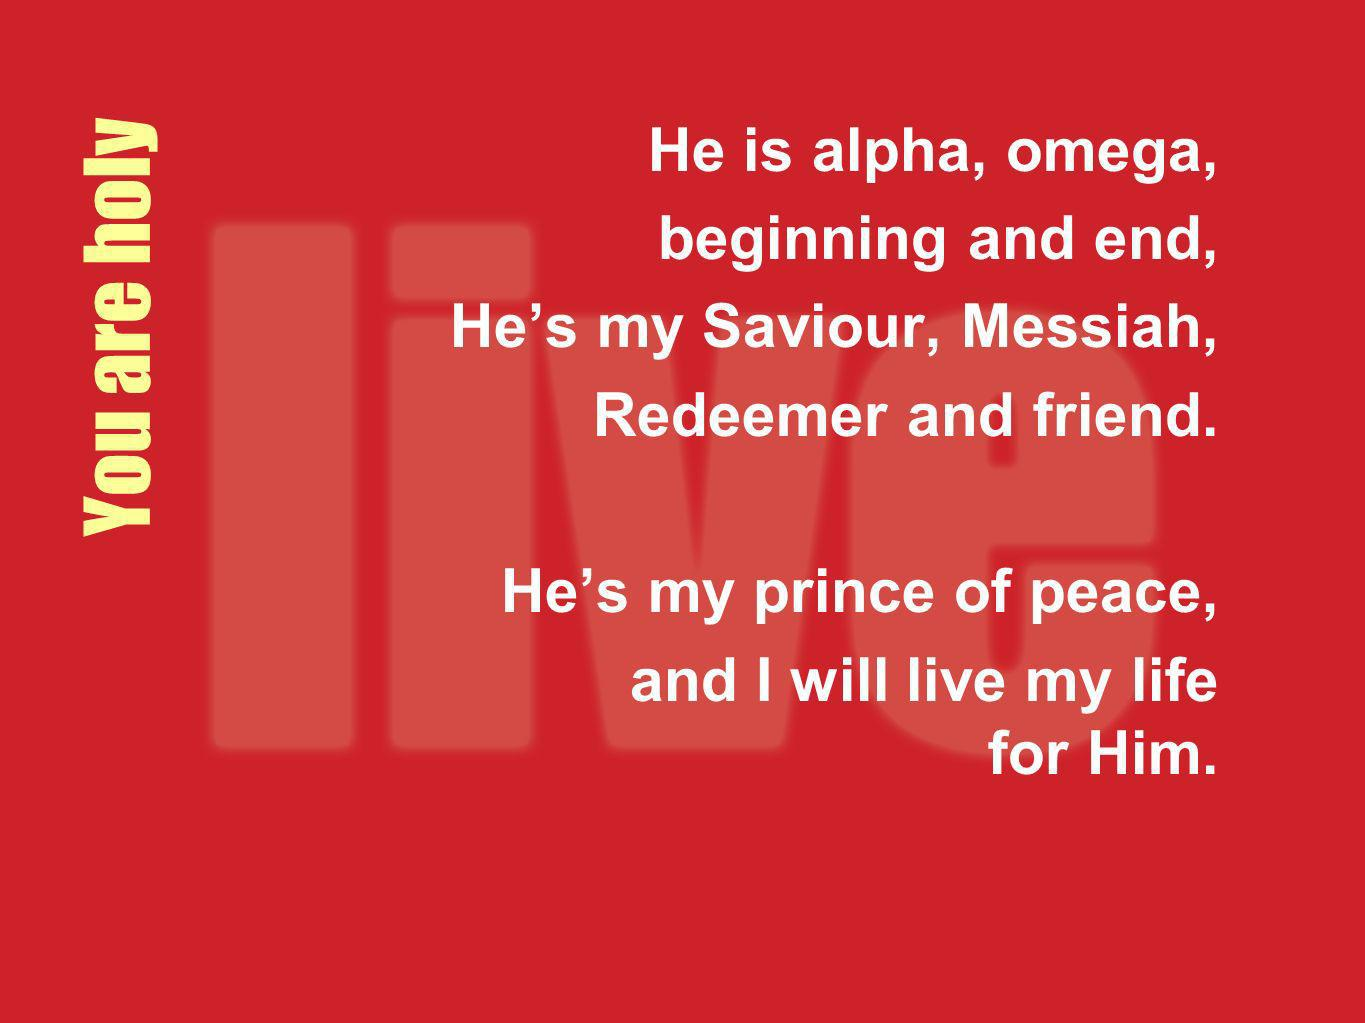 You are holy He is alpha, omega, beginning and end, Hes my Saviour, Messiah, Redeemer and friend. Hes my prince of peace, and I will live my life for